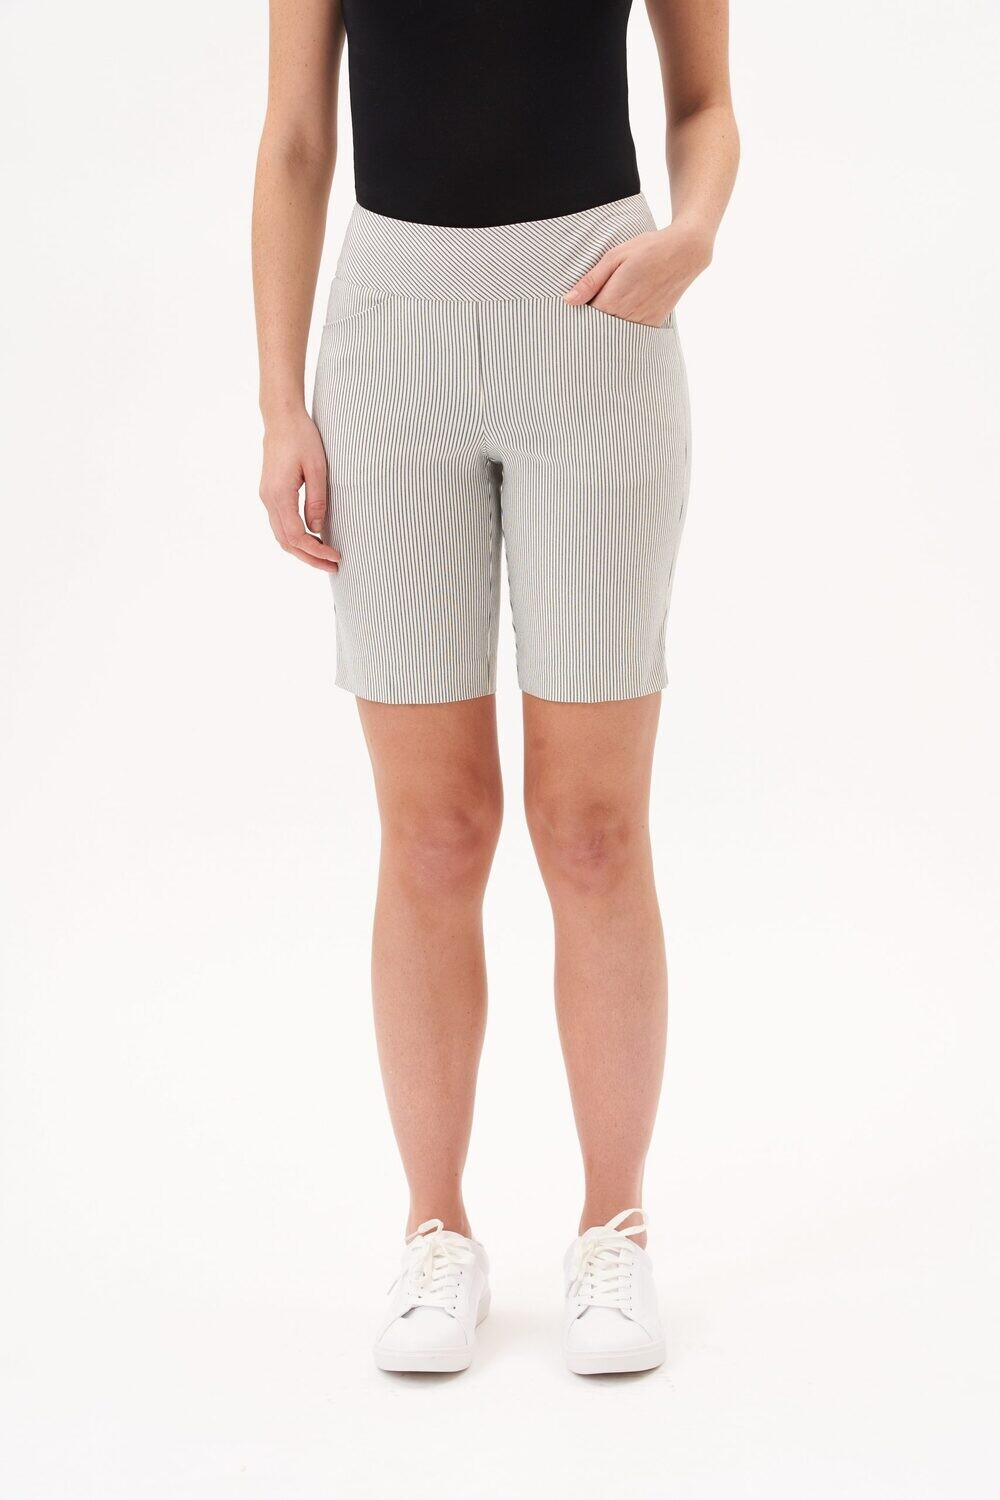 UP Striped modern short 9 inch pant